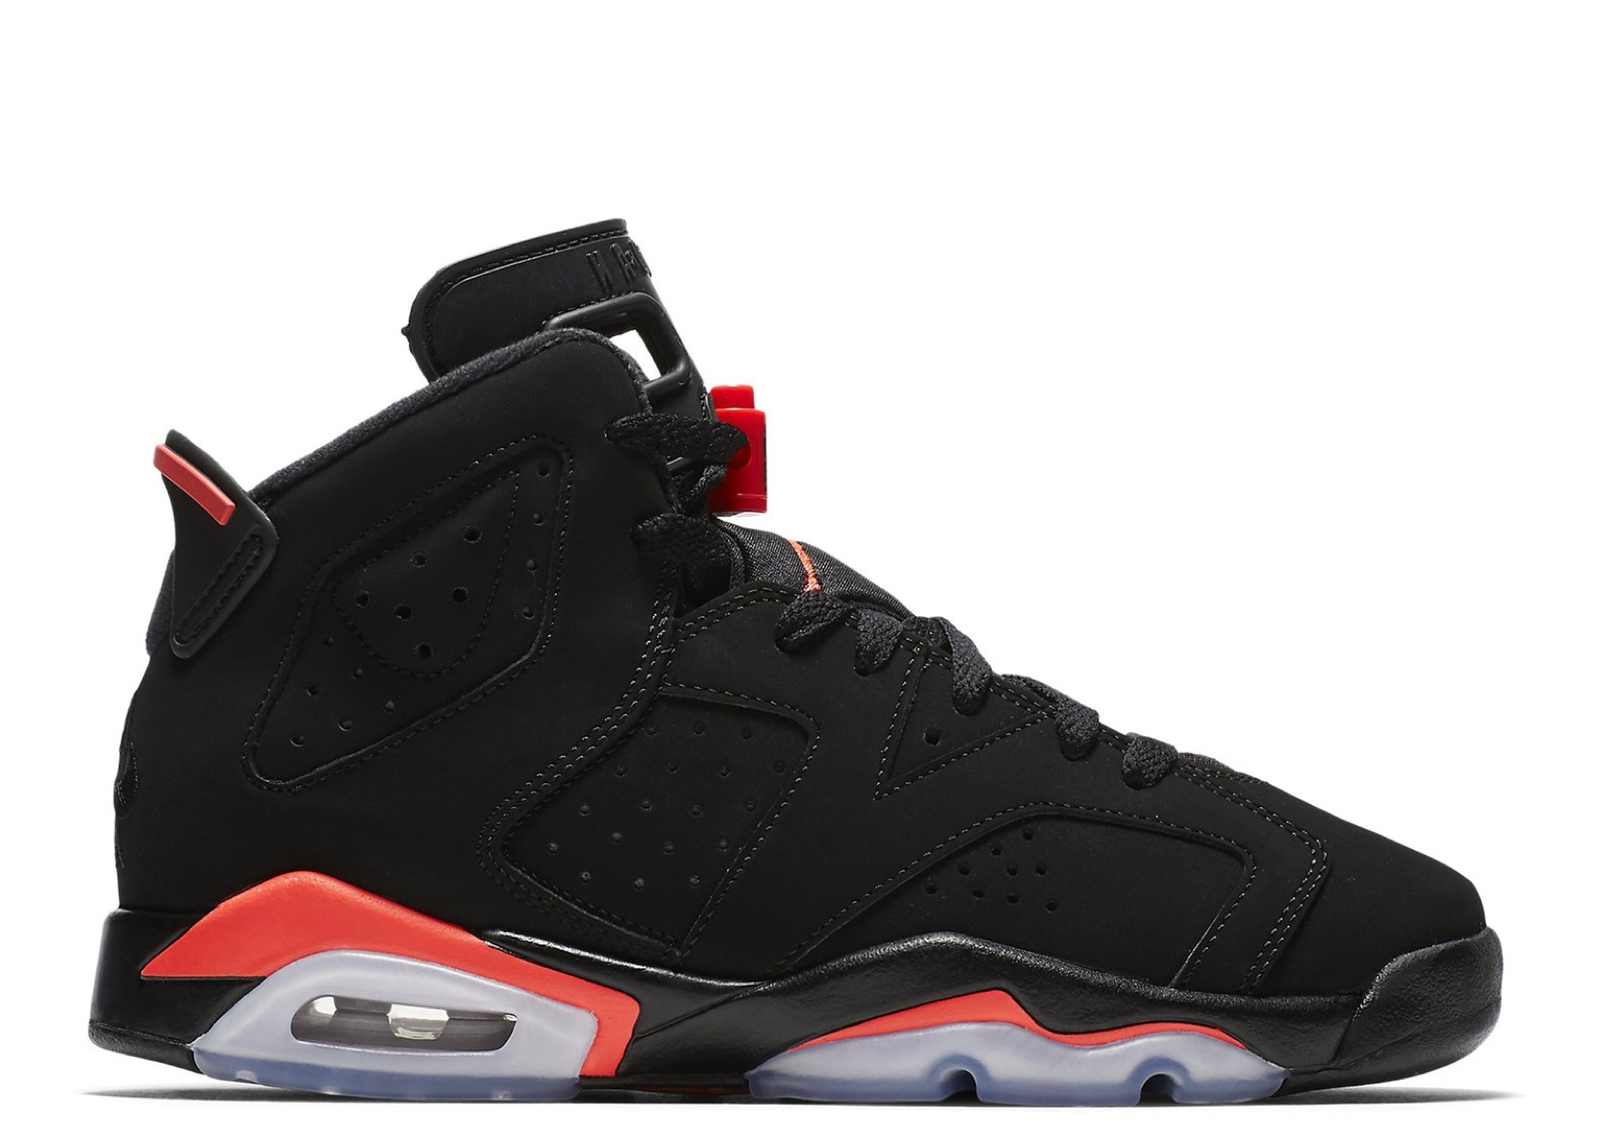 c106e46942182c Jordan 6 Retro Black Infrared (2019)